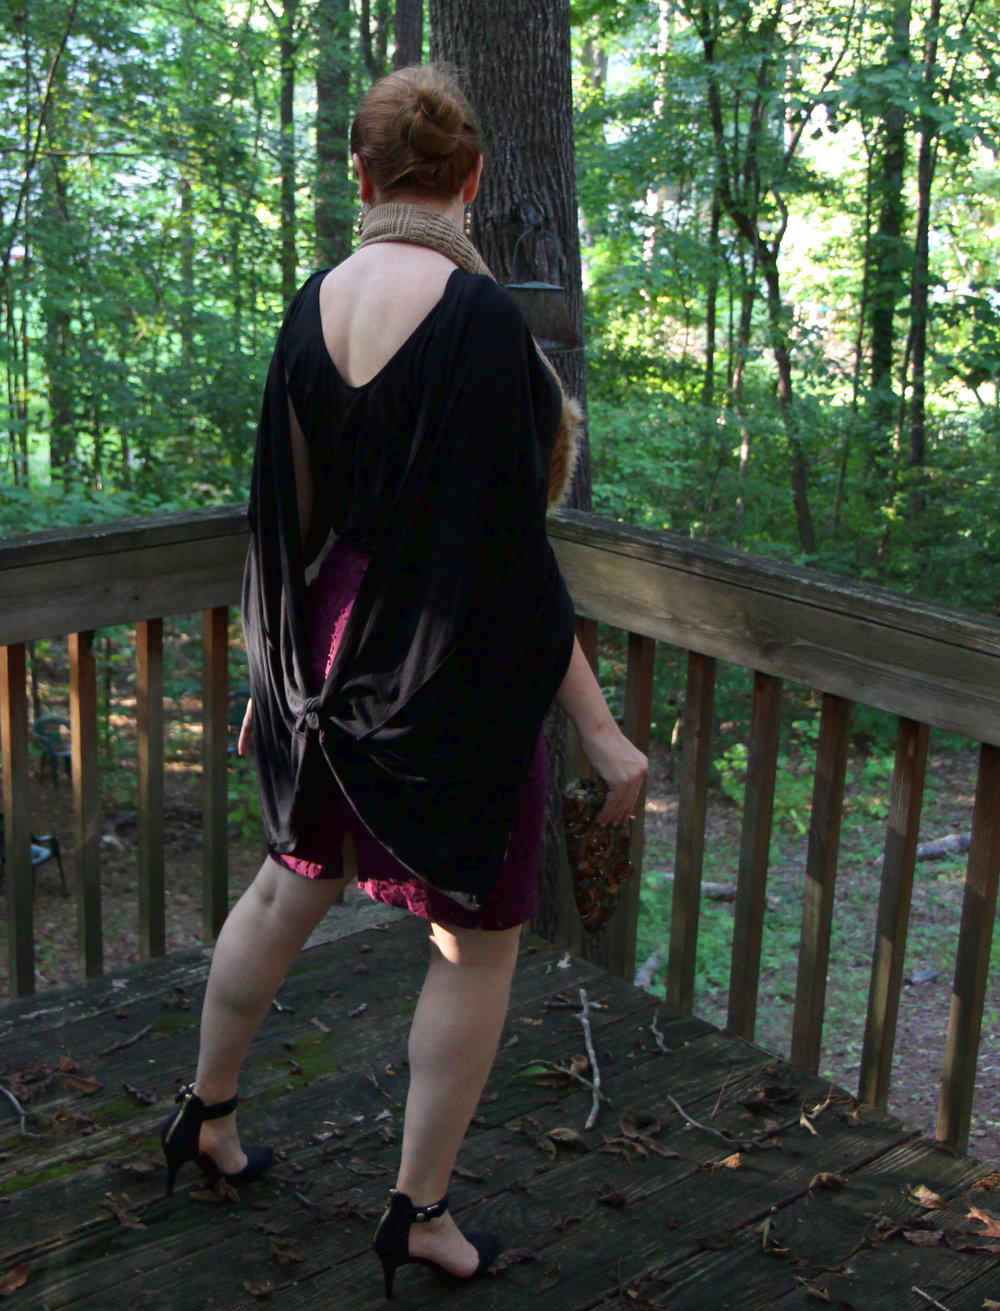 Elegant Cape: From the back: Panels draped over shoulders and then tied